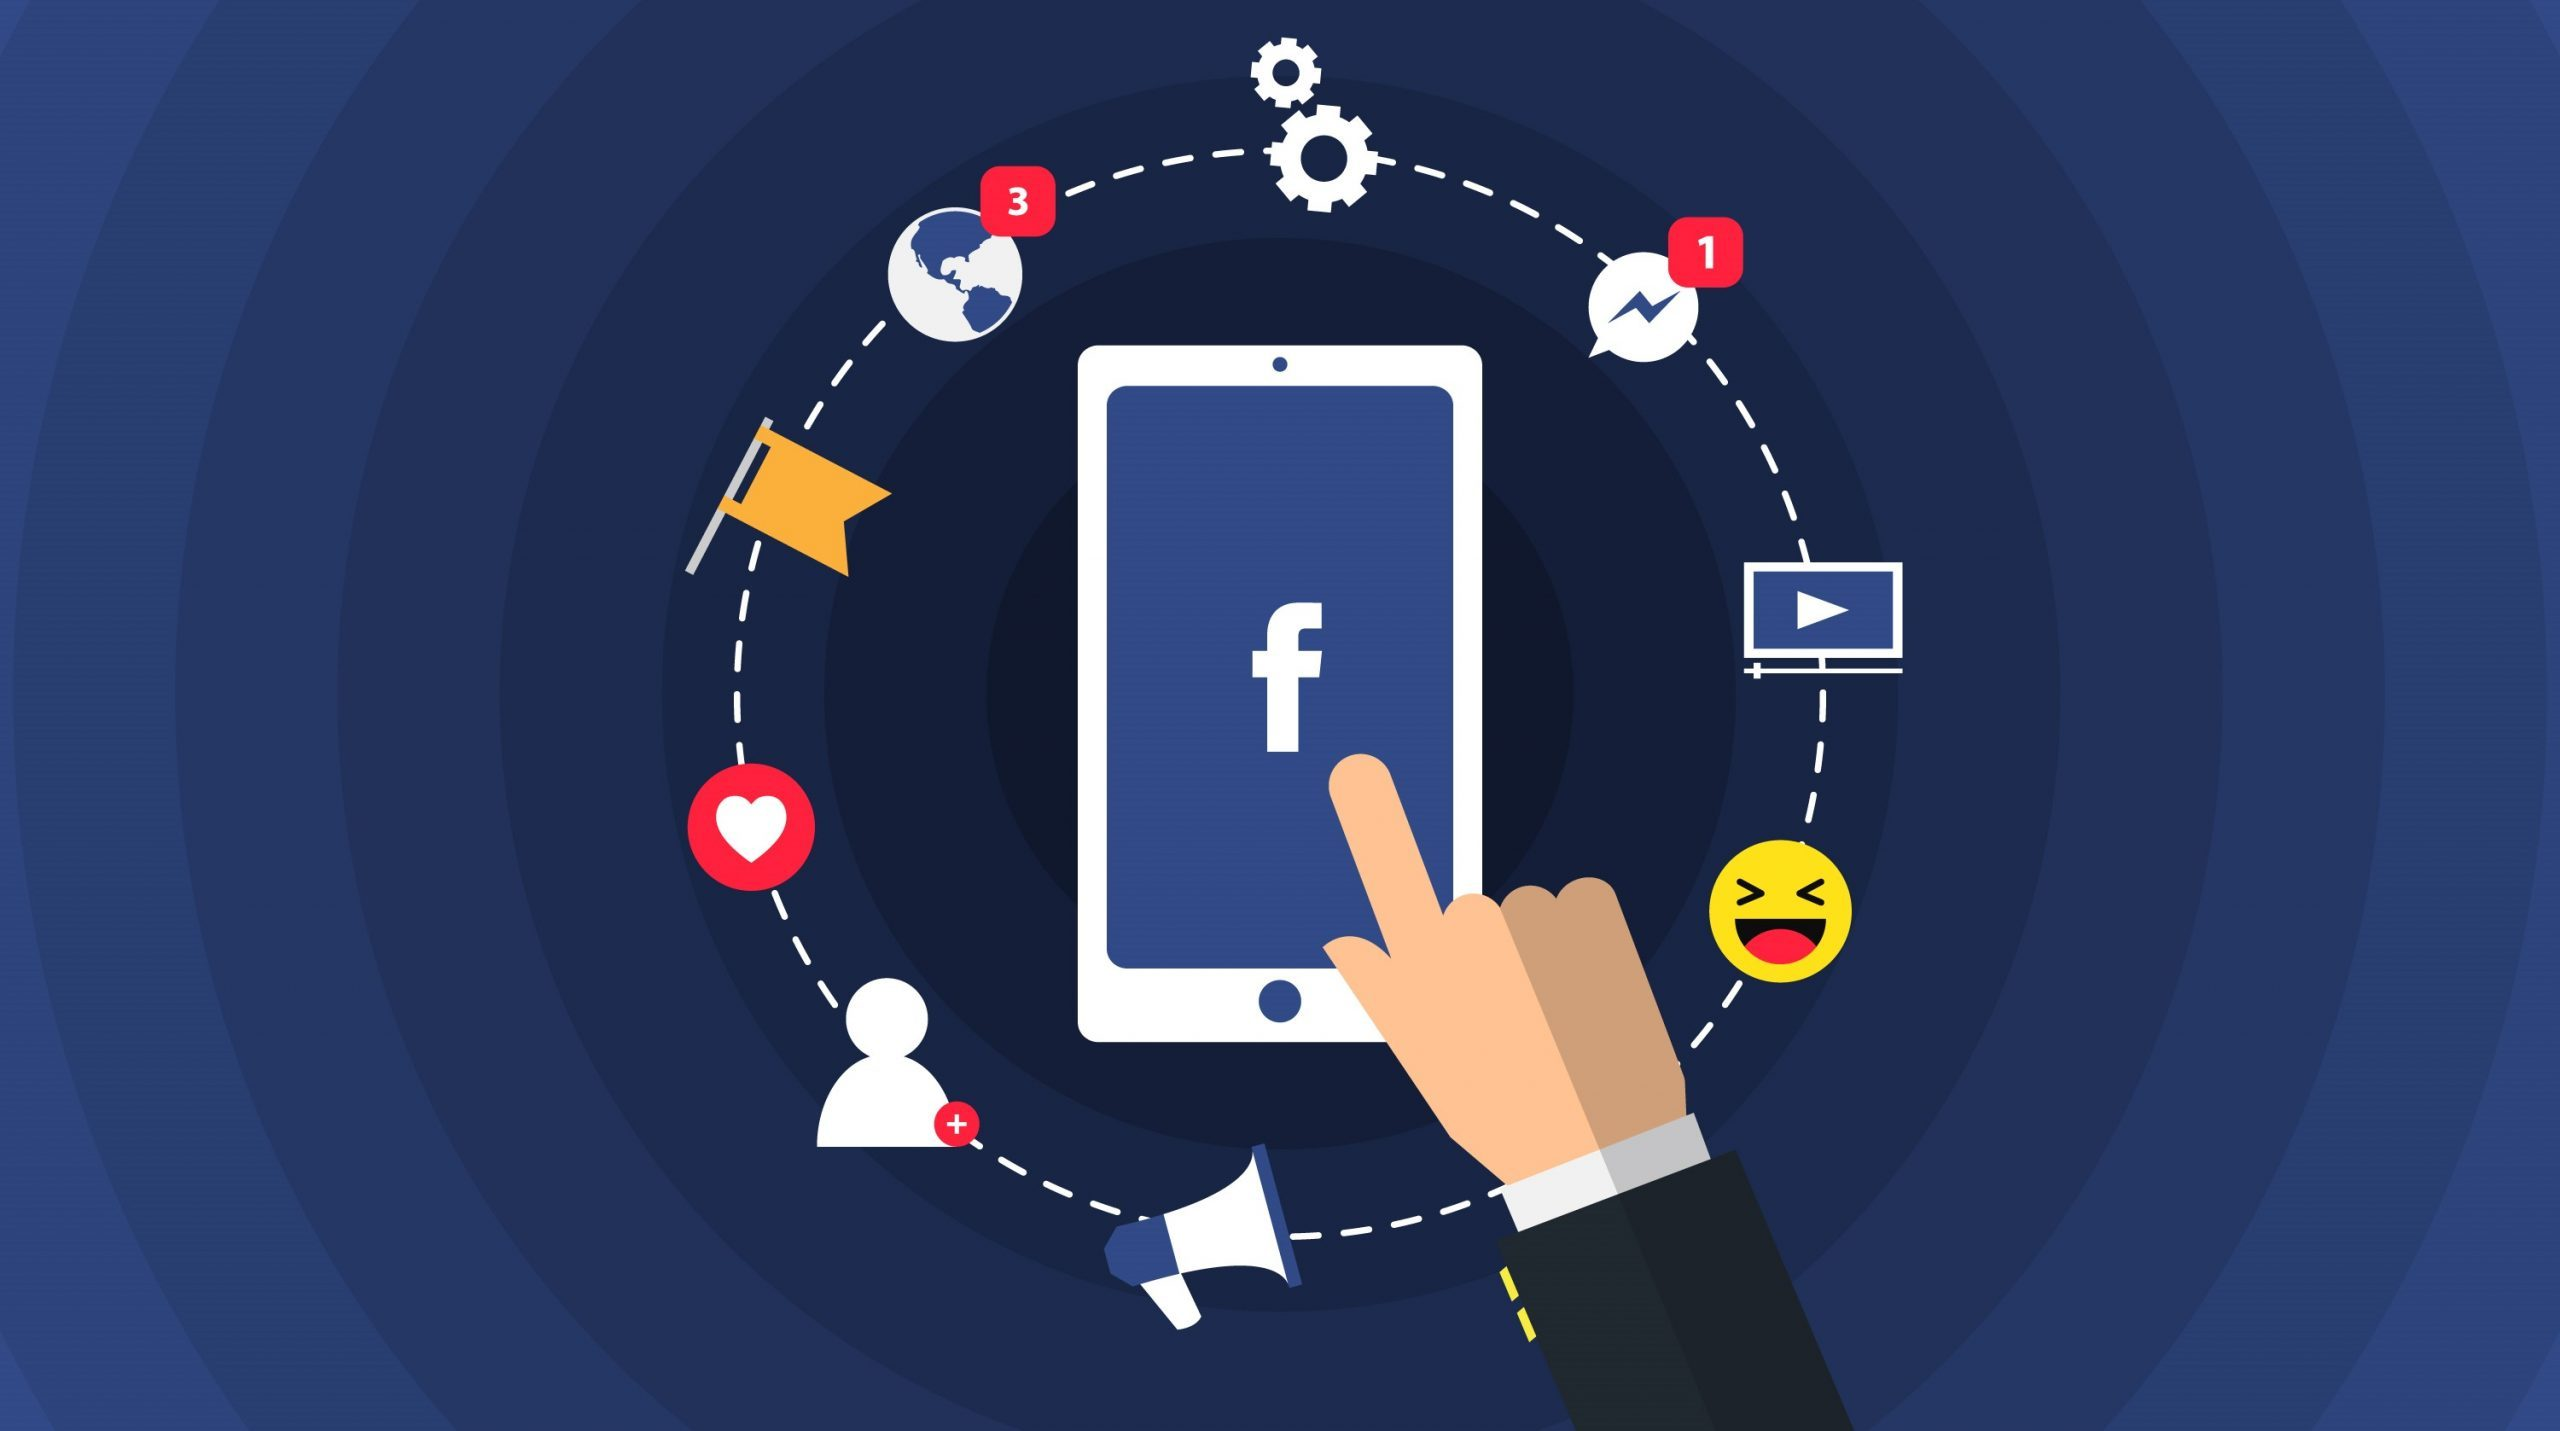 Facebook Marketing in 2020: How to Use Facebook for Business (1/2)